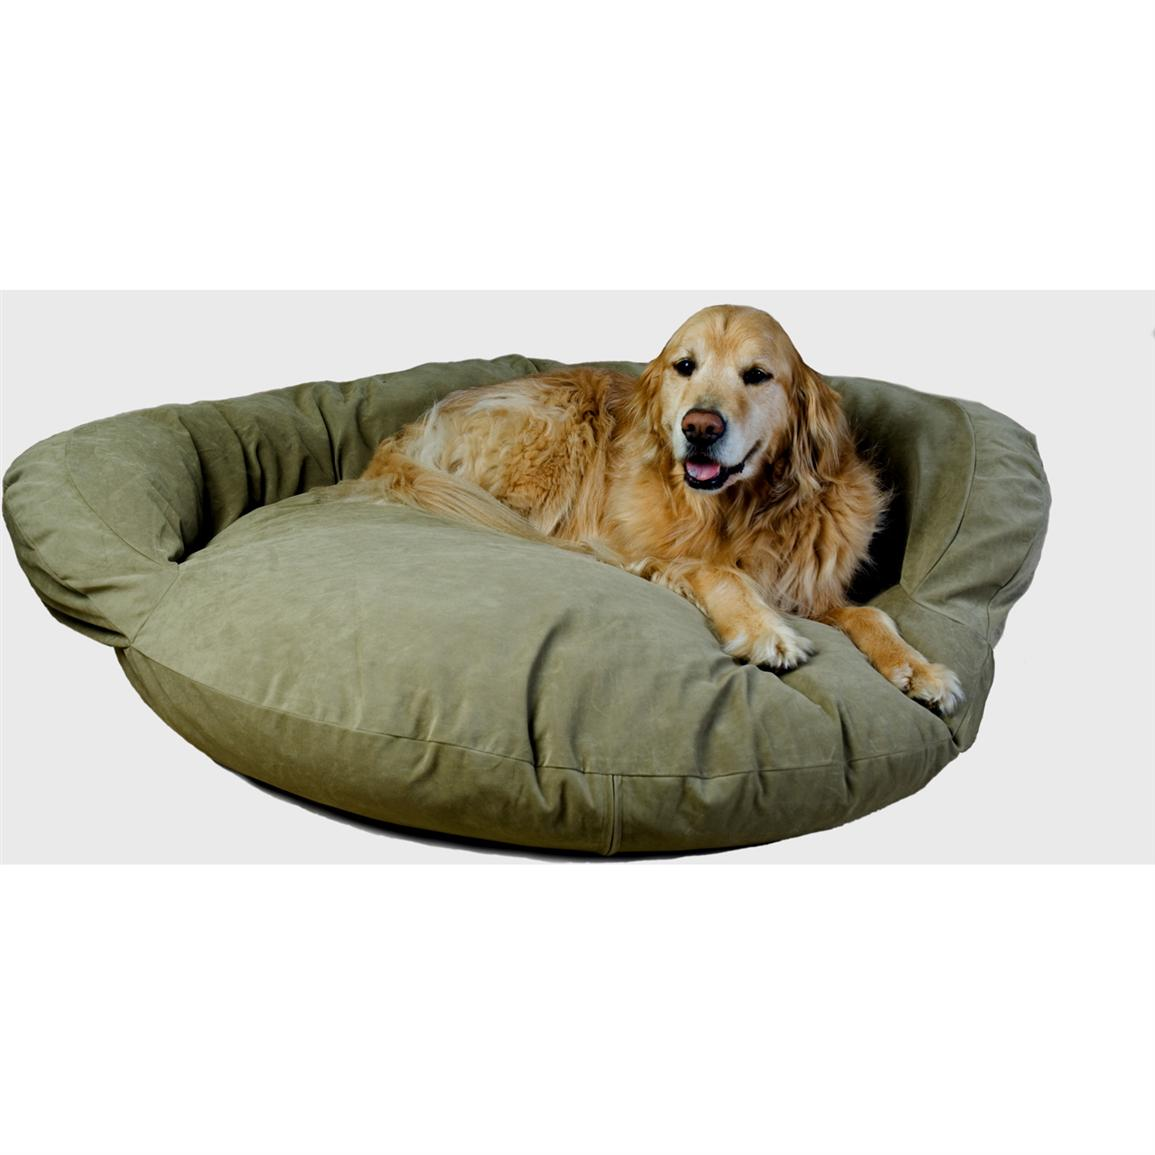 Carolina Pet Co. Microfiber Bolster Bed, Sage